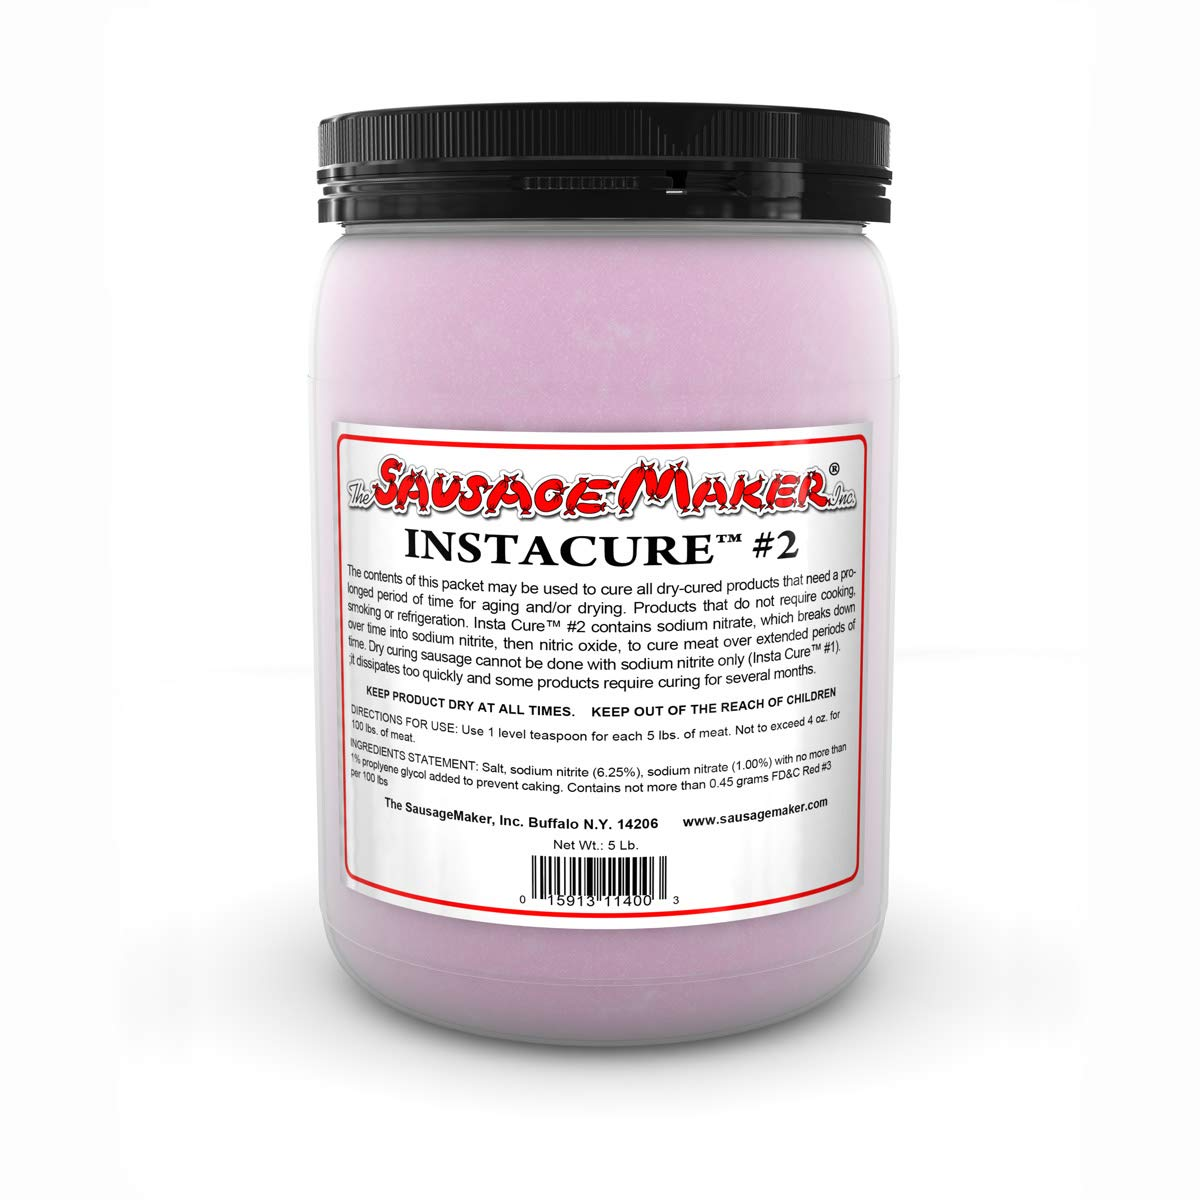 The Sausage Maker - Insta Cure (Prague Powder) #2, 5 lbs. Curing Salt for Sausage and Meats